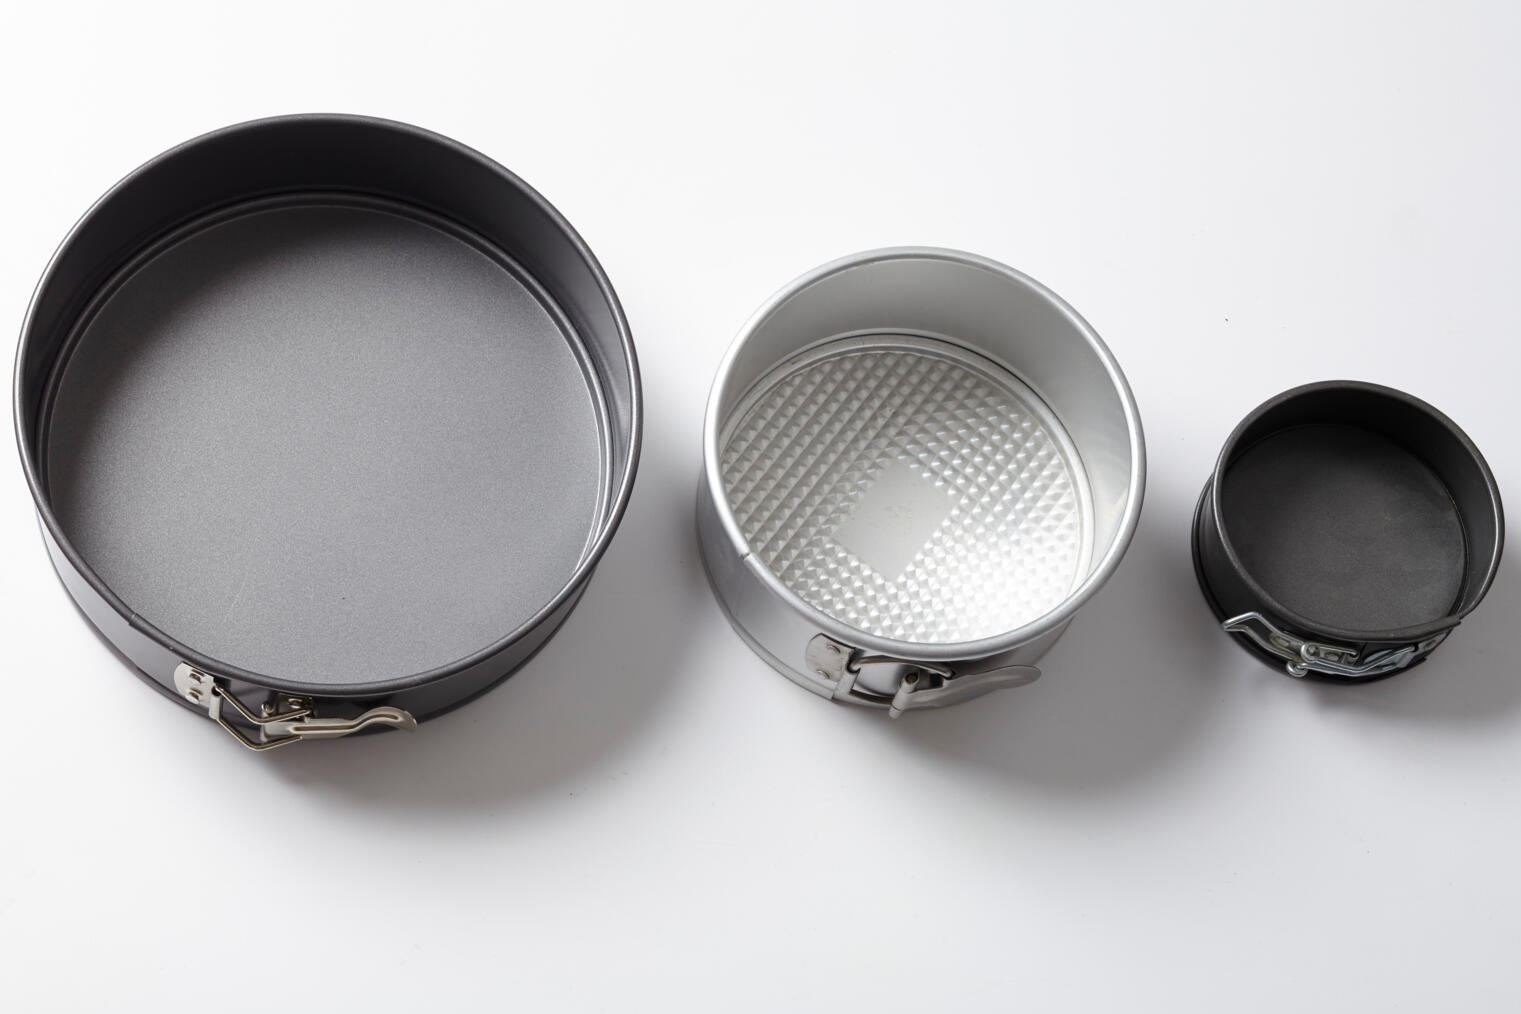 large, medium, and small springform pans